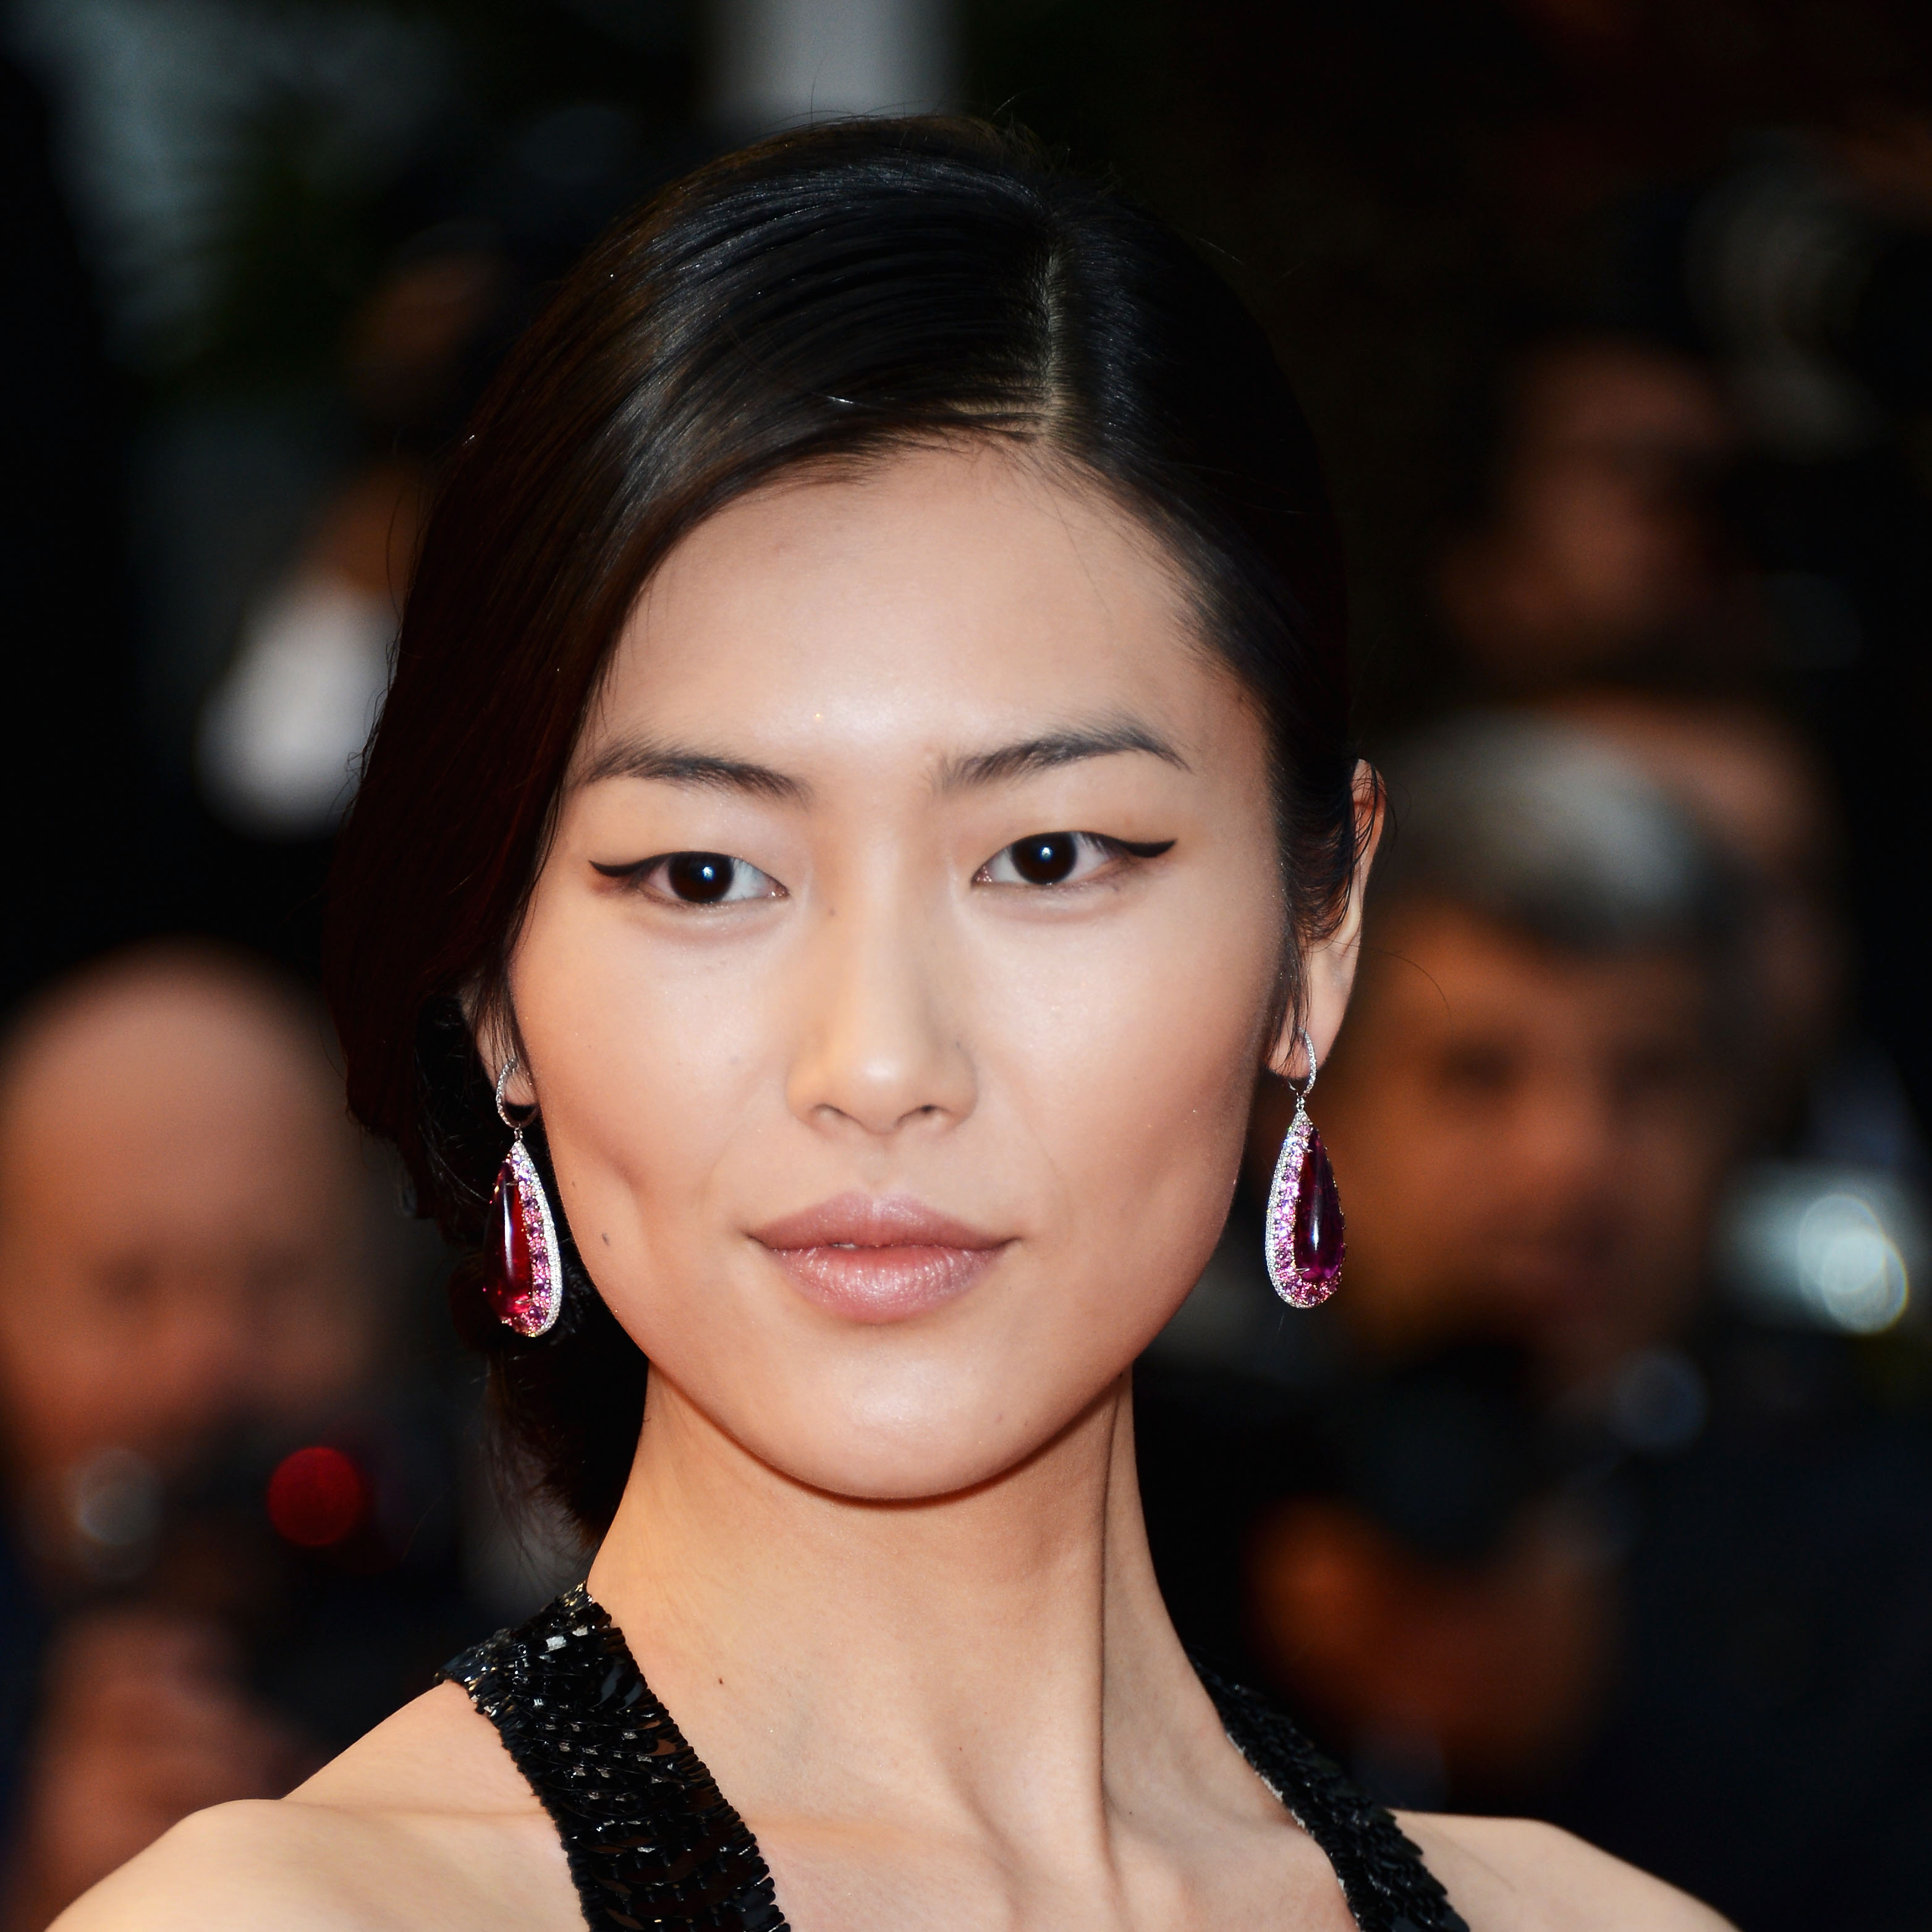 The 29-year old daughter of father (?) and mother(?), 178 cm tall Liu Wen in 2017 photo